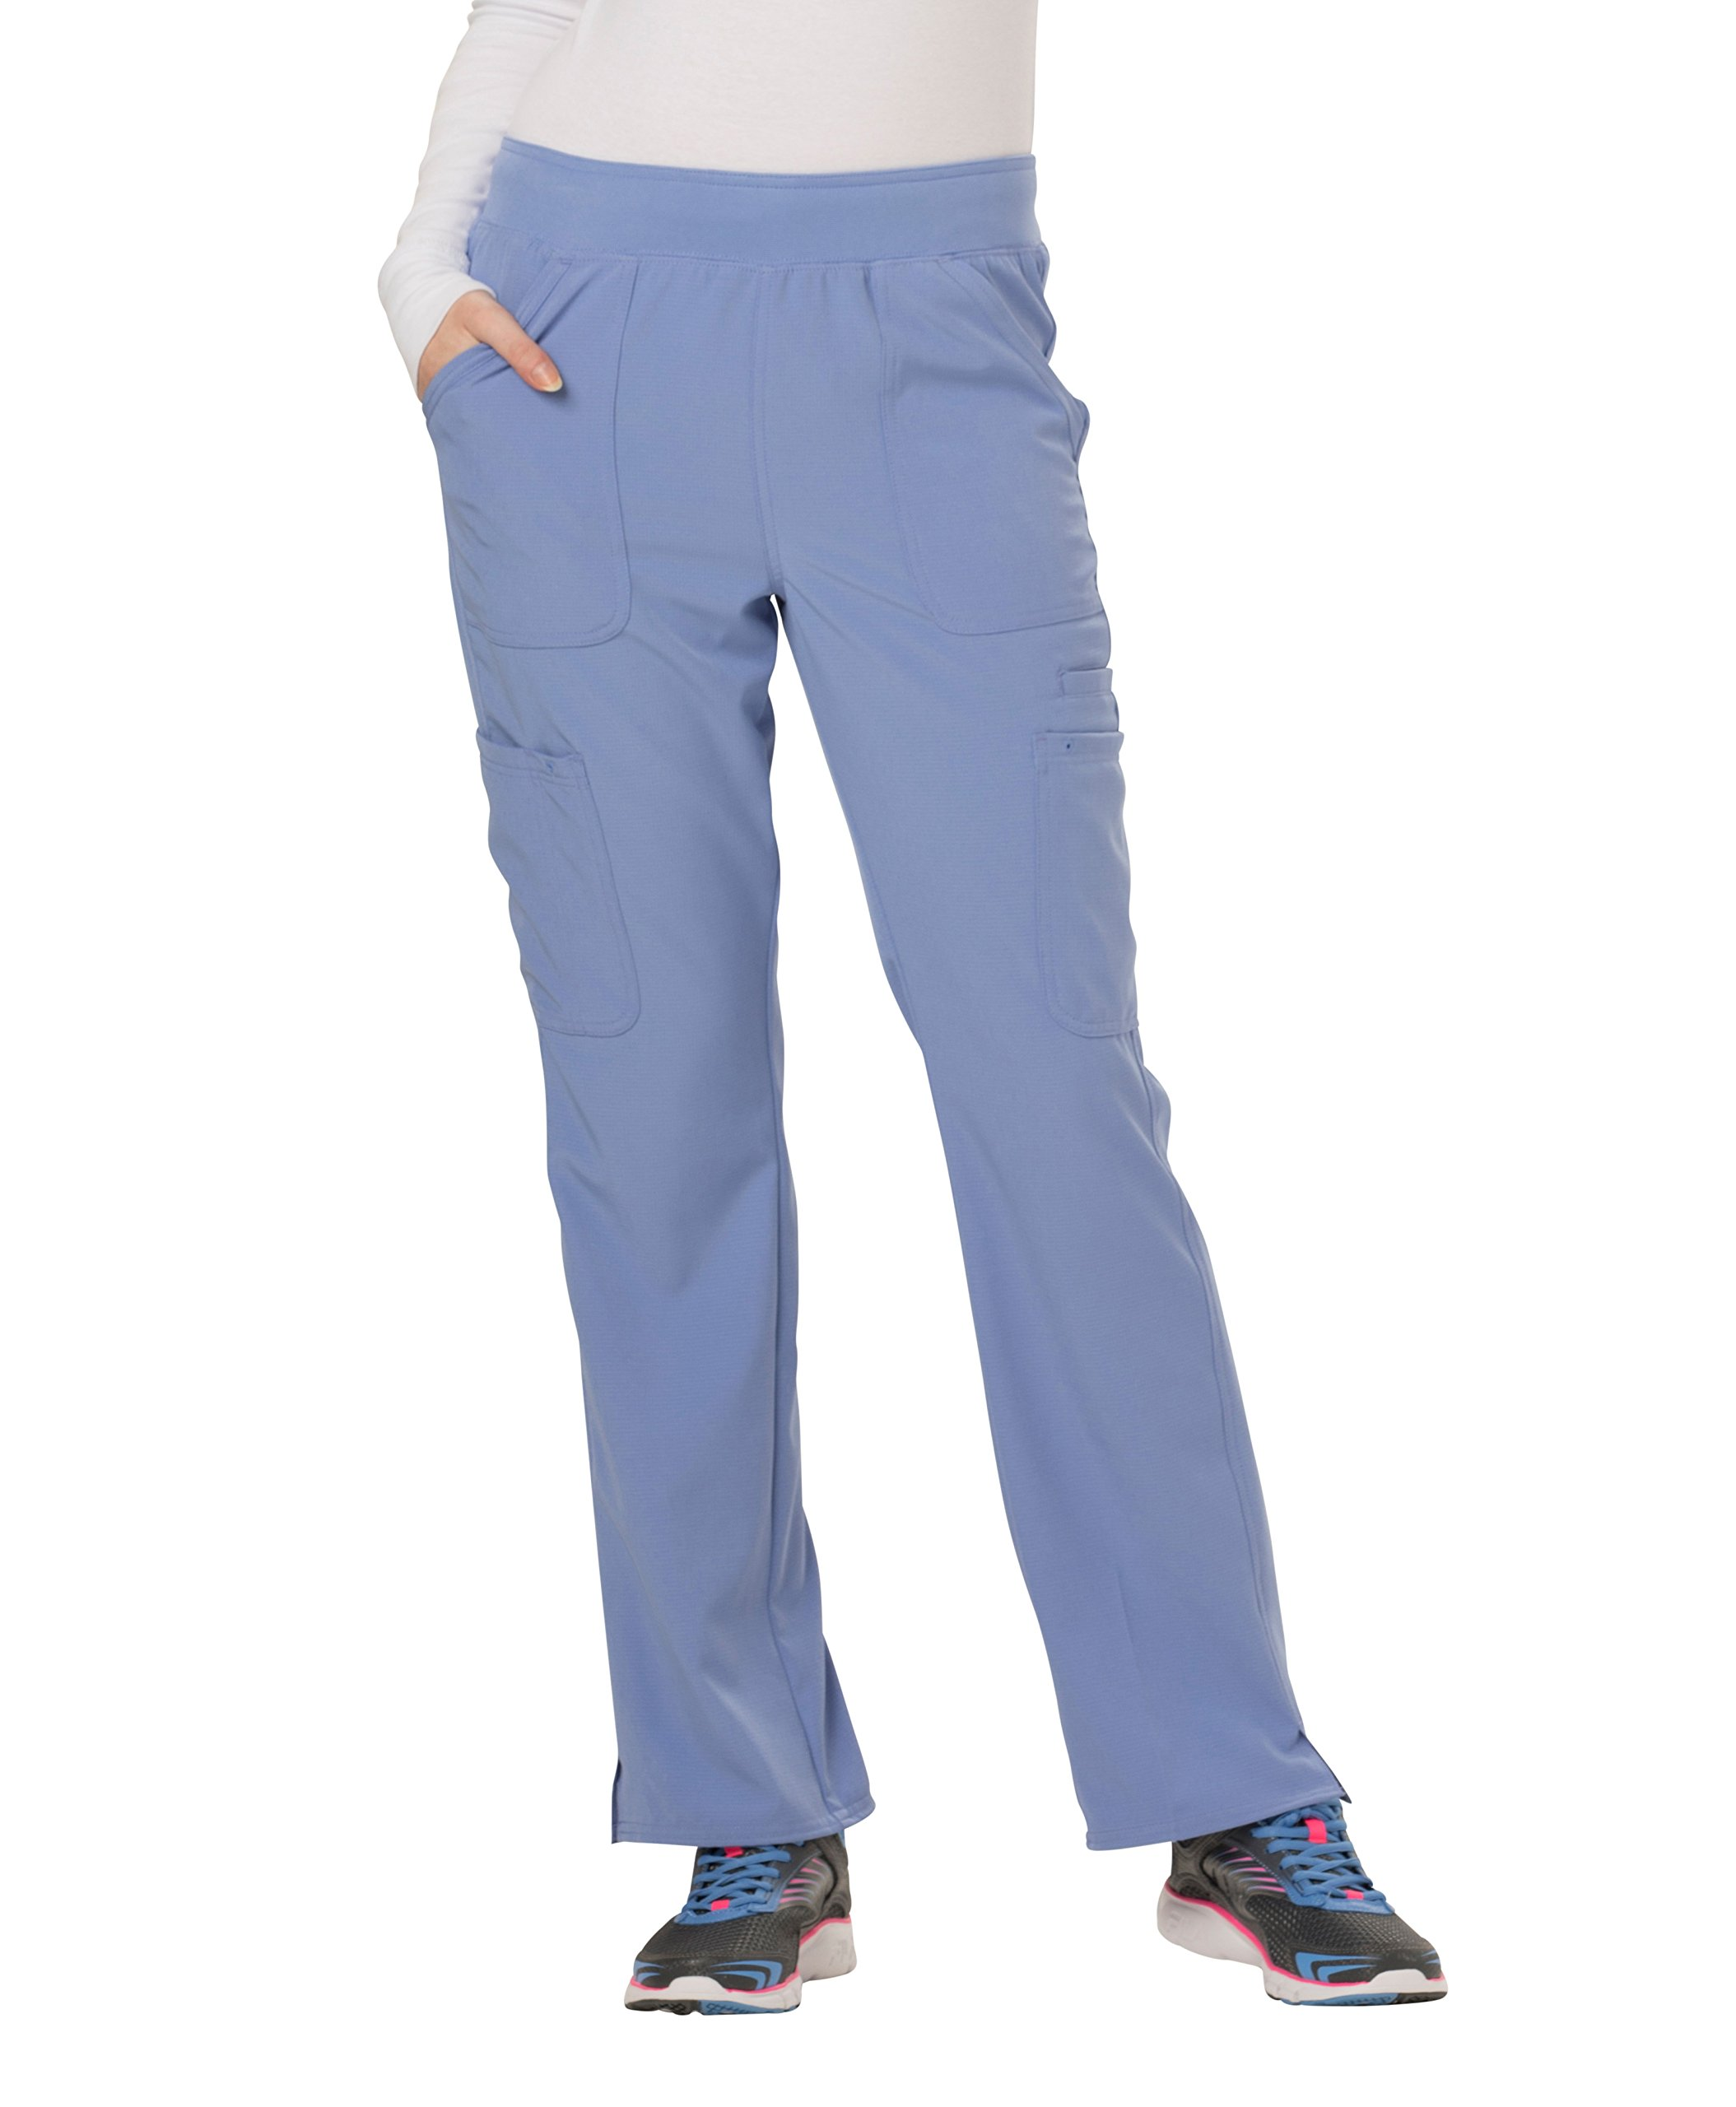 HeartSoul Women's HS020'' Drawn To Love Low Rise Pull-On Cargo Pant- Ceil Blue- Small Petite